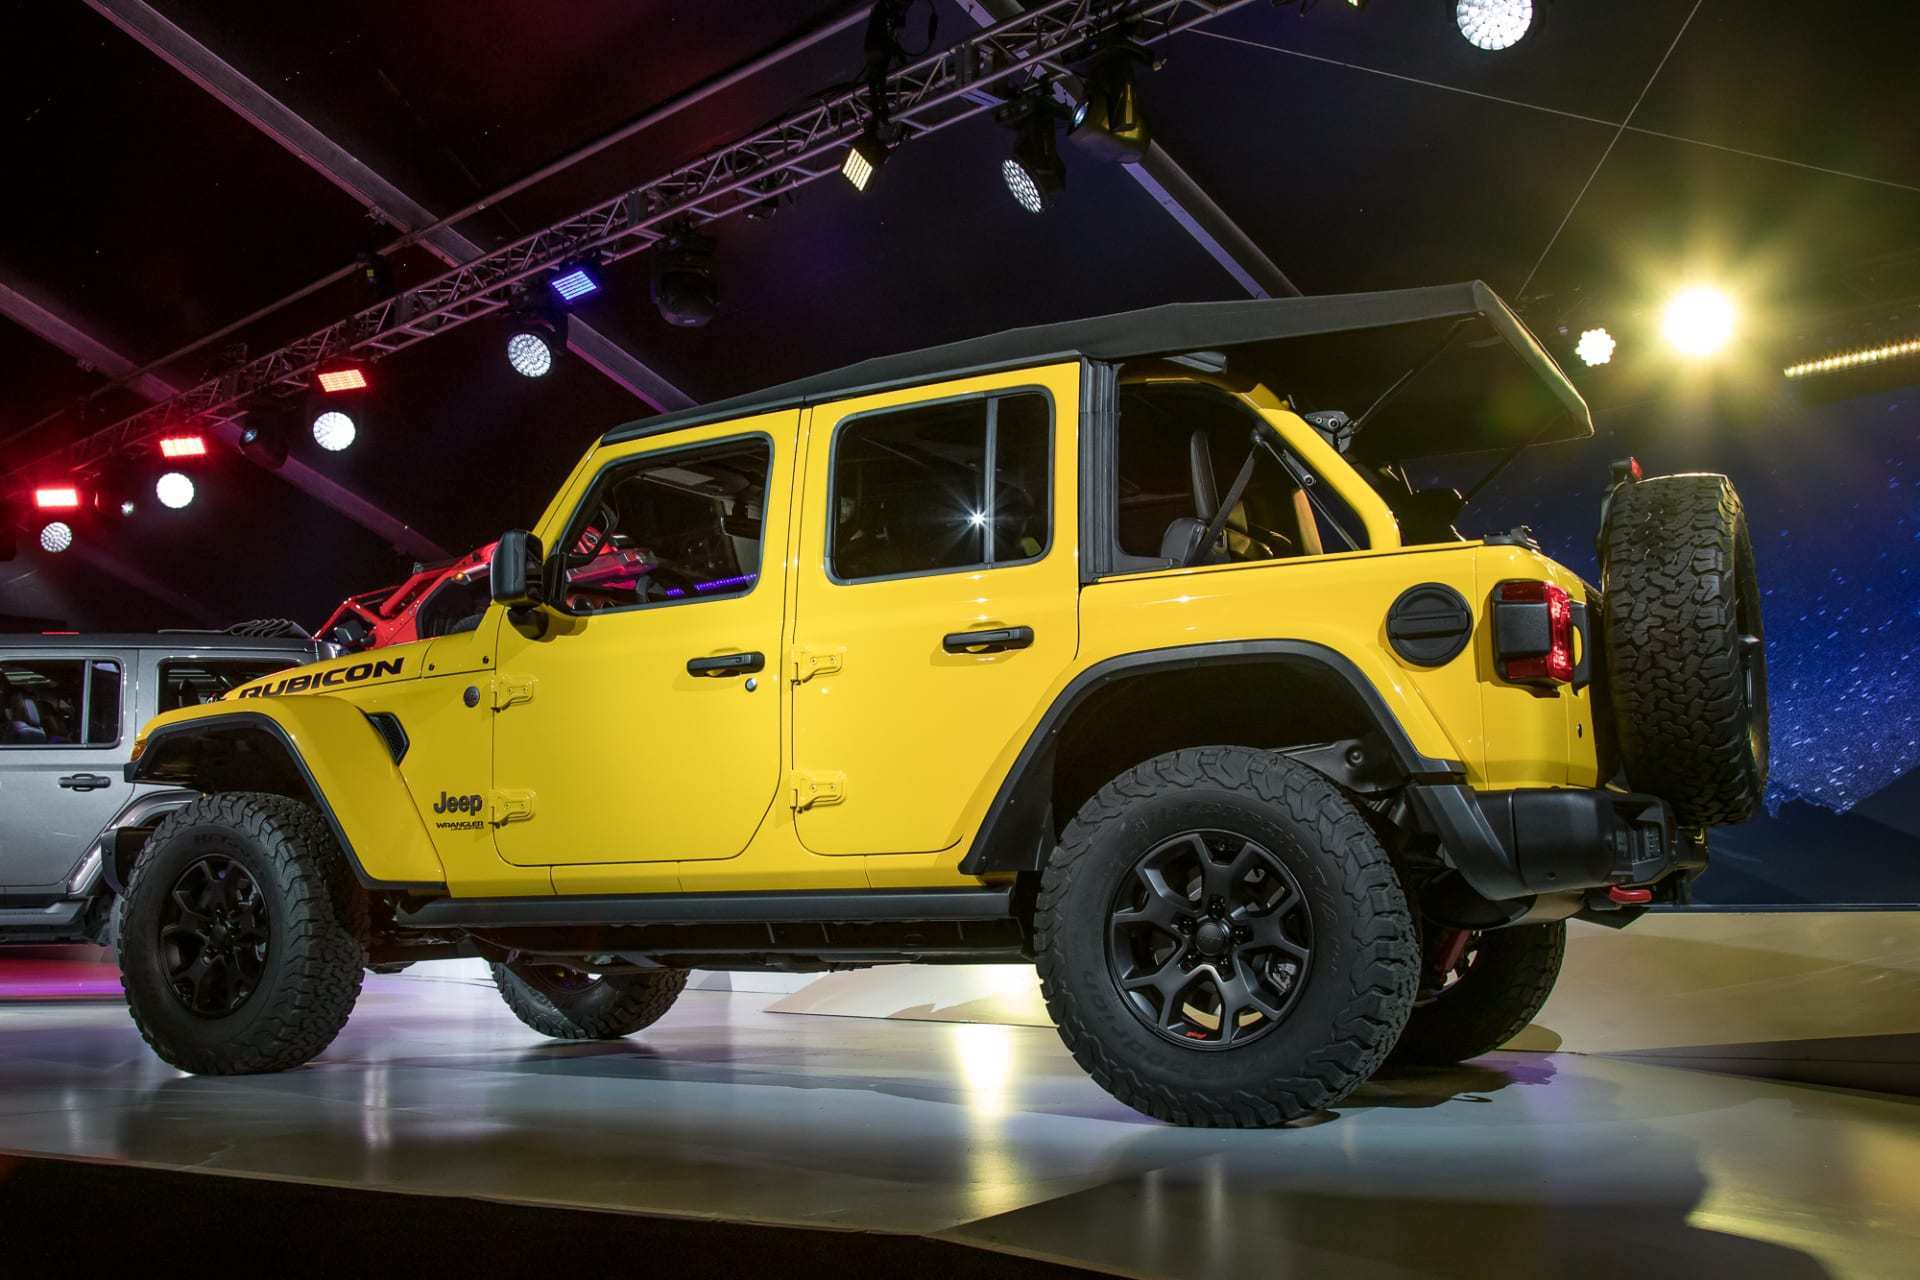 53 Best Review Jeep Rubicon 2020 Price Exterior and Interior by Jeep Rubicon 2020 Price